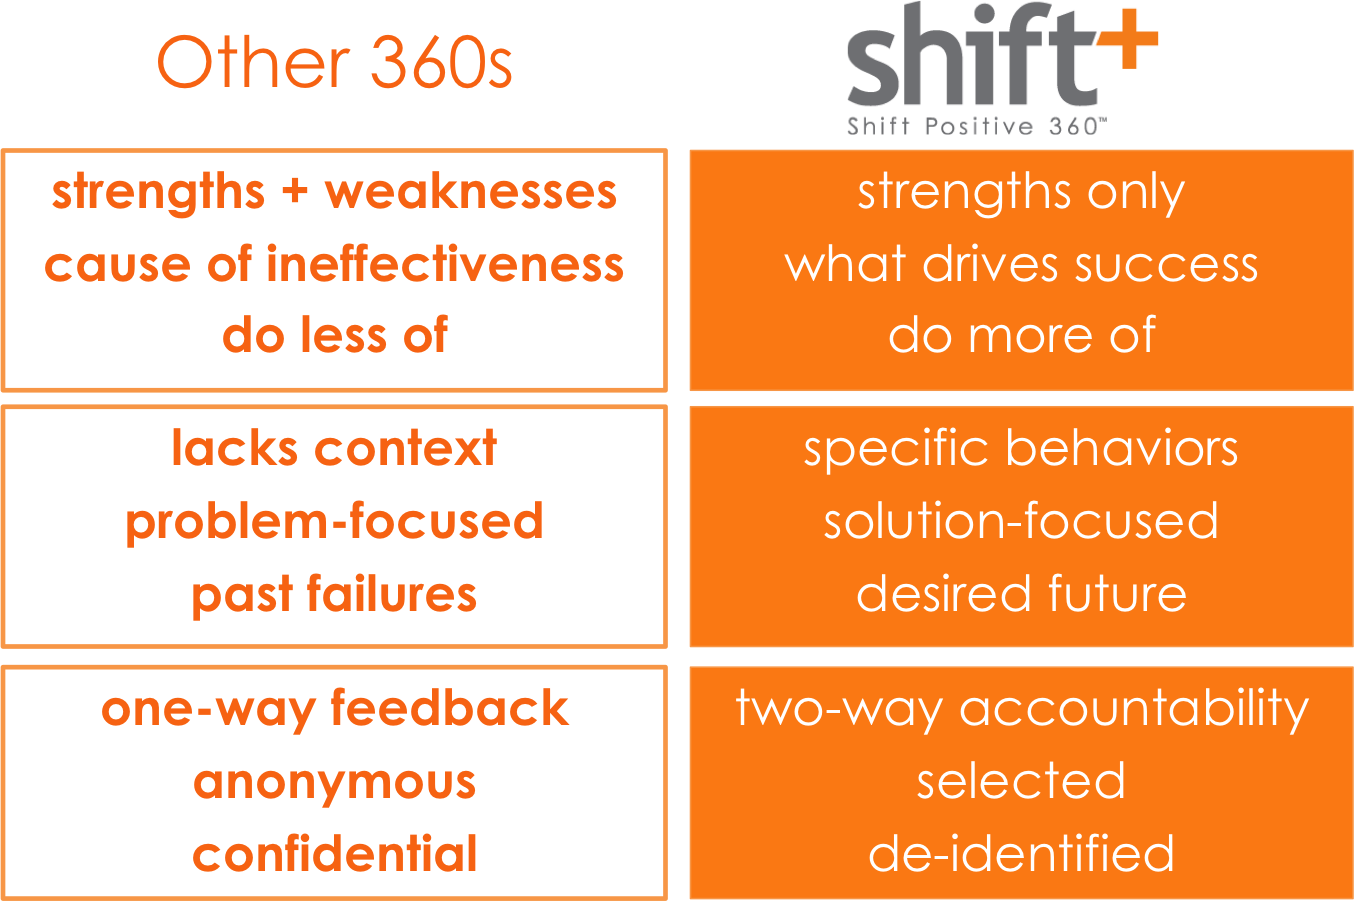 How does shift+ 360 compare?